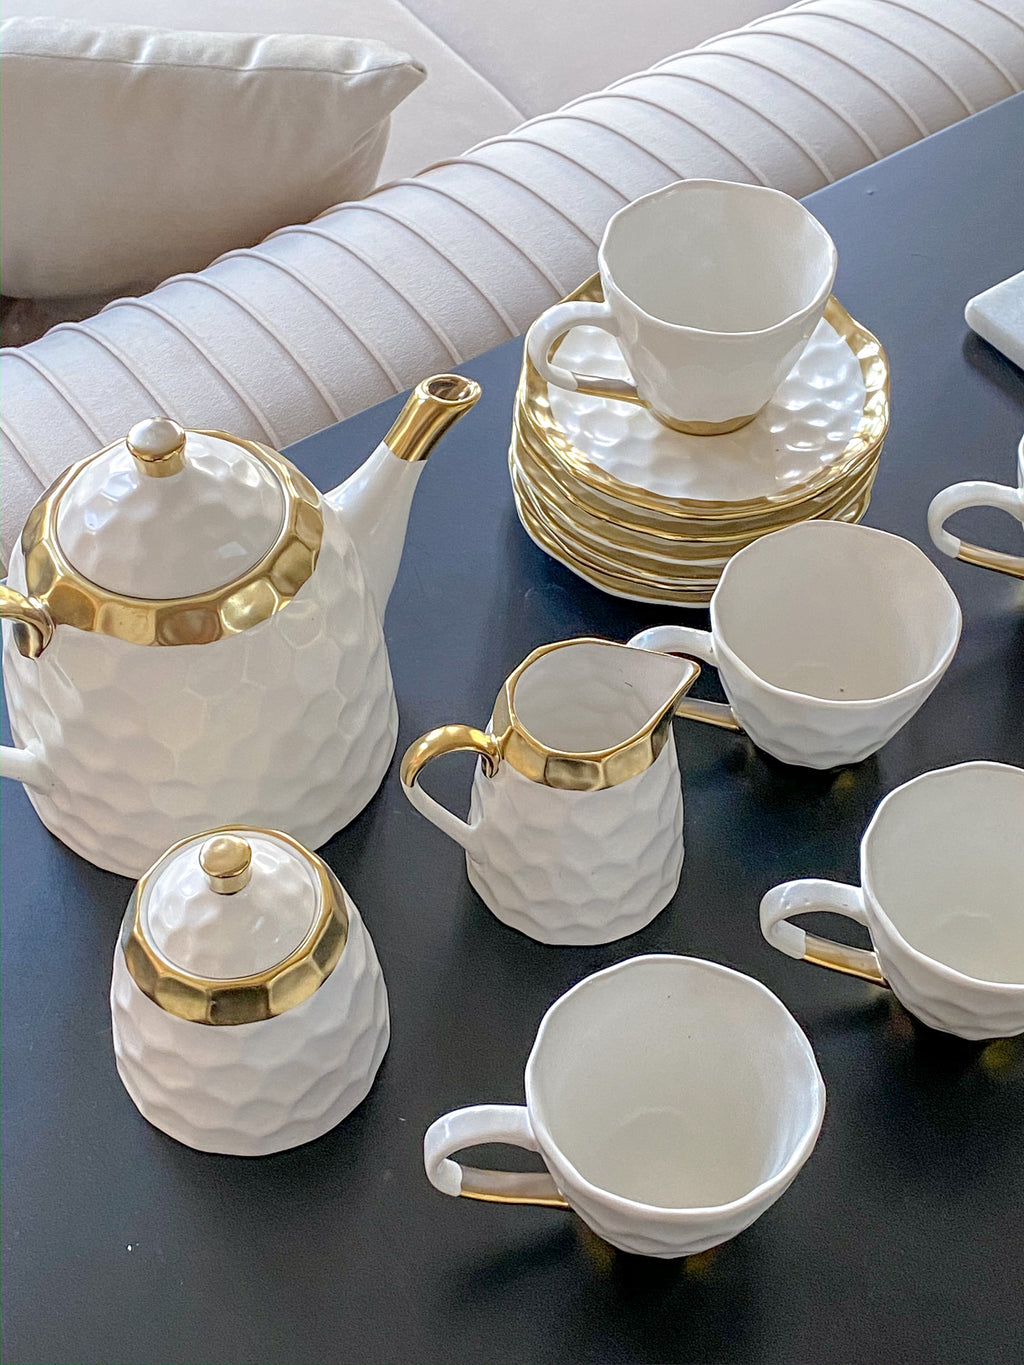 Ceramic White and Gold Tea Set